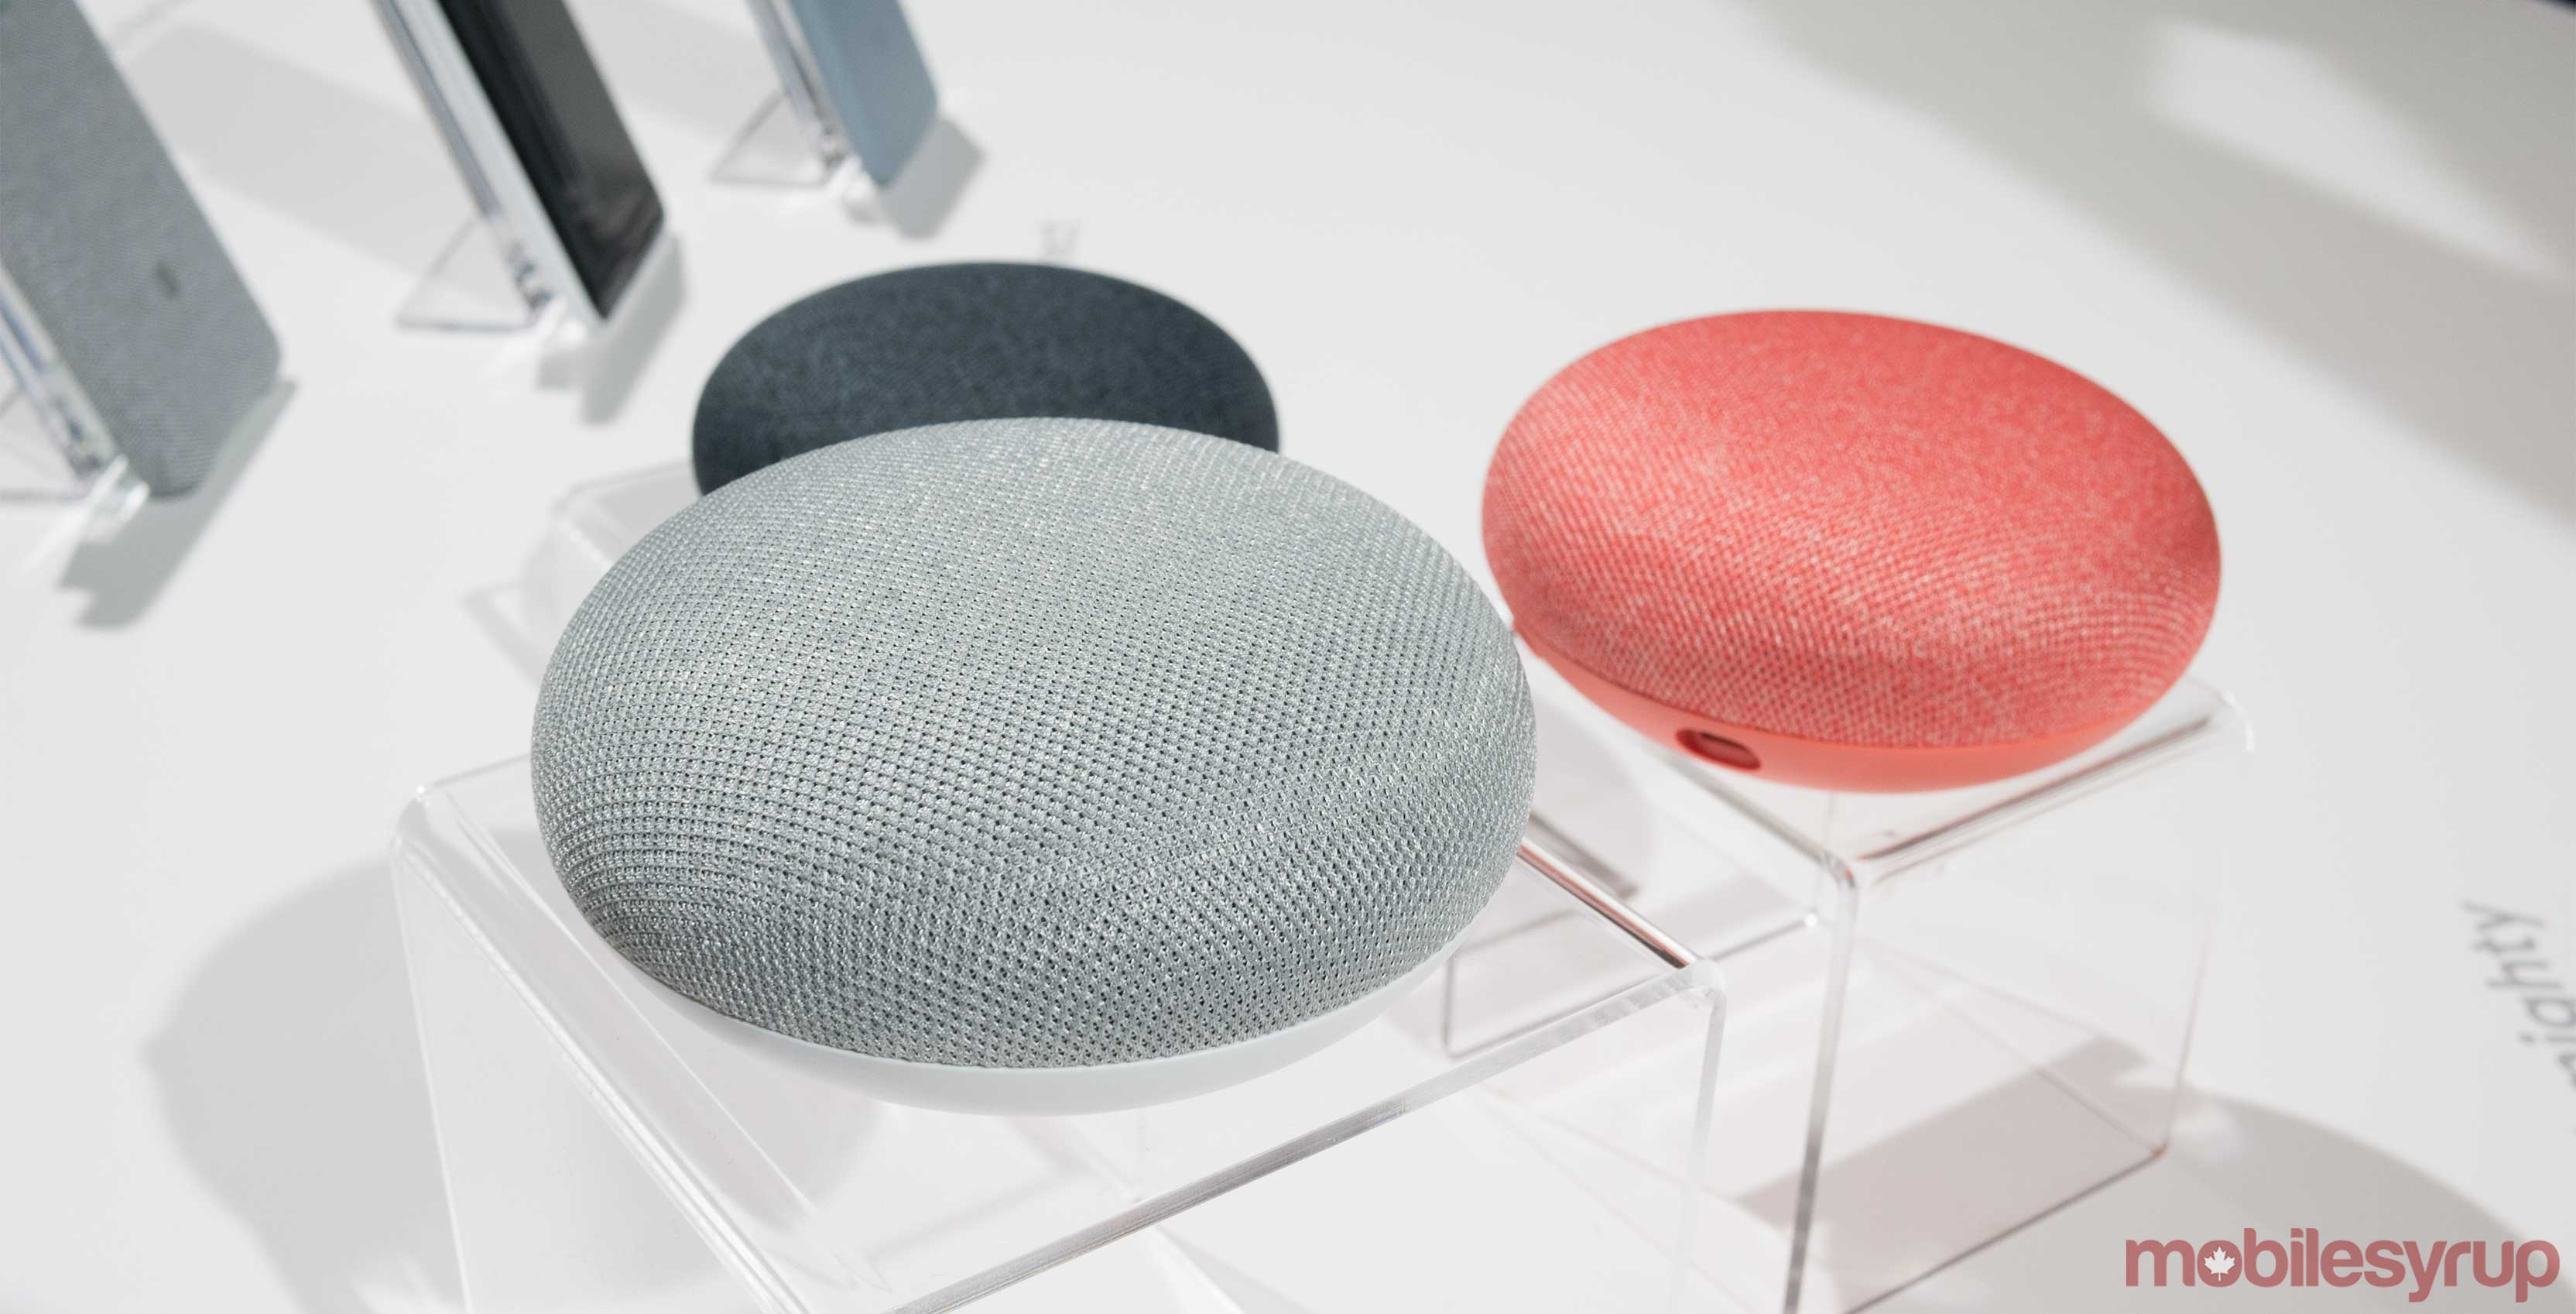 The three different colours of the Google Home Mini